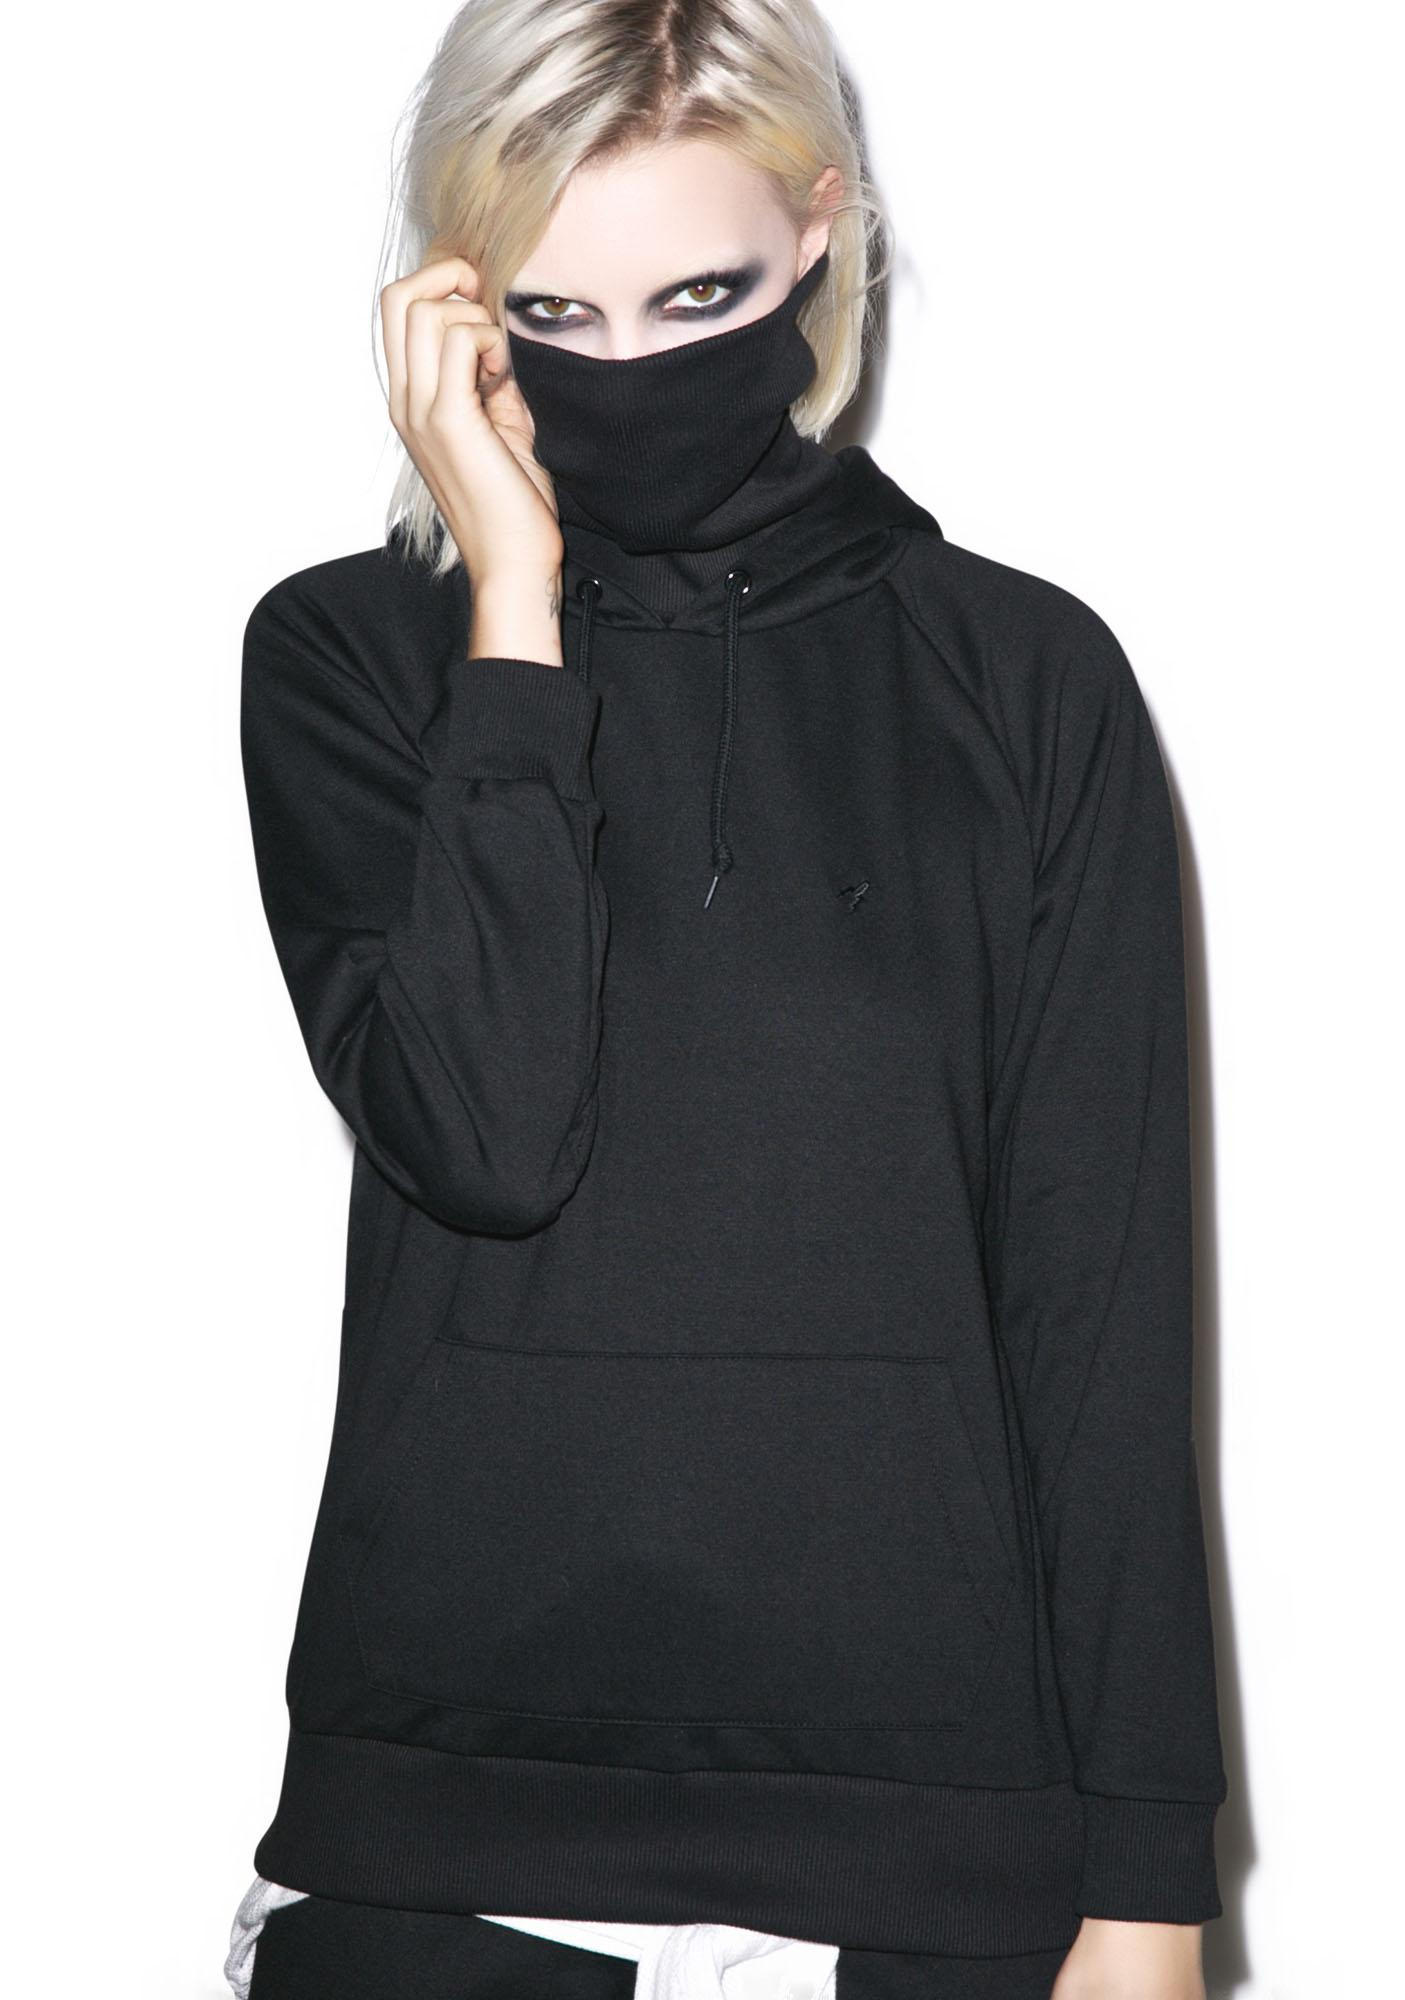 Shop for men's Ninja hoodies & sweatshirts from Zazzle. Choose a design from our huge selection of images, artwork, & photos. Search for products. T-Shirts Hoodies & Sweatshirts Jerseys Jackets Polos Activewear Socks Underwear Shoes Embroidered Shirts.